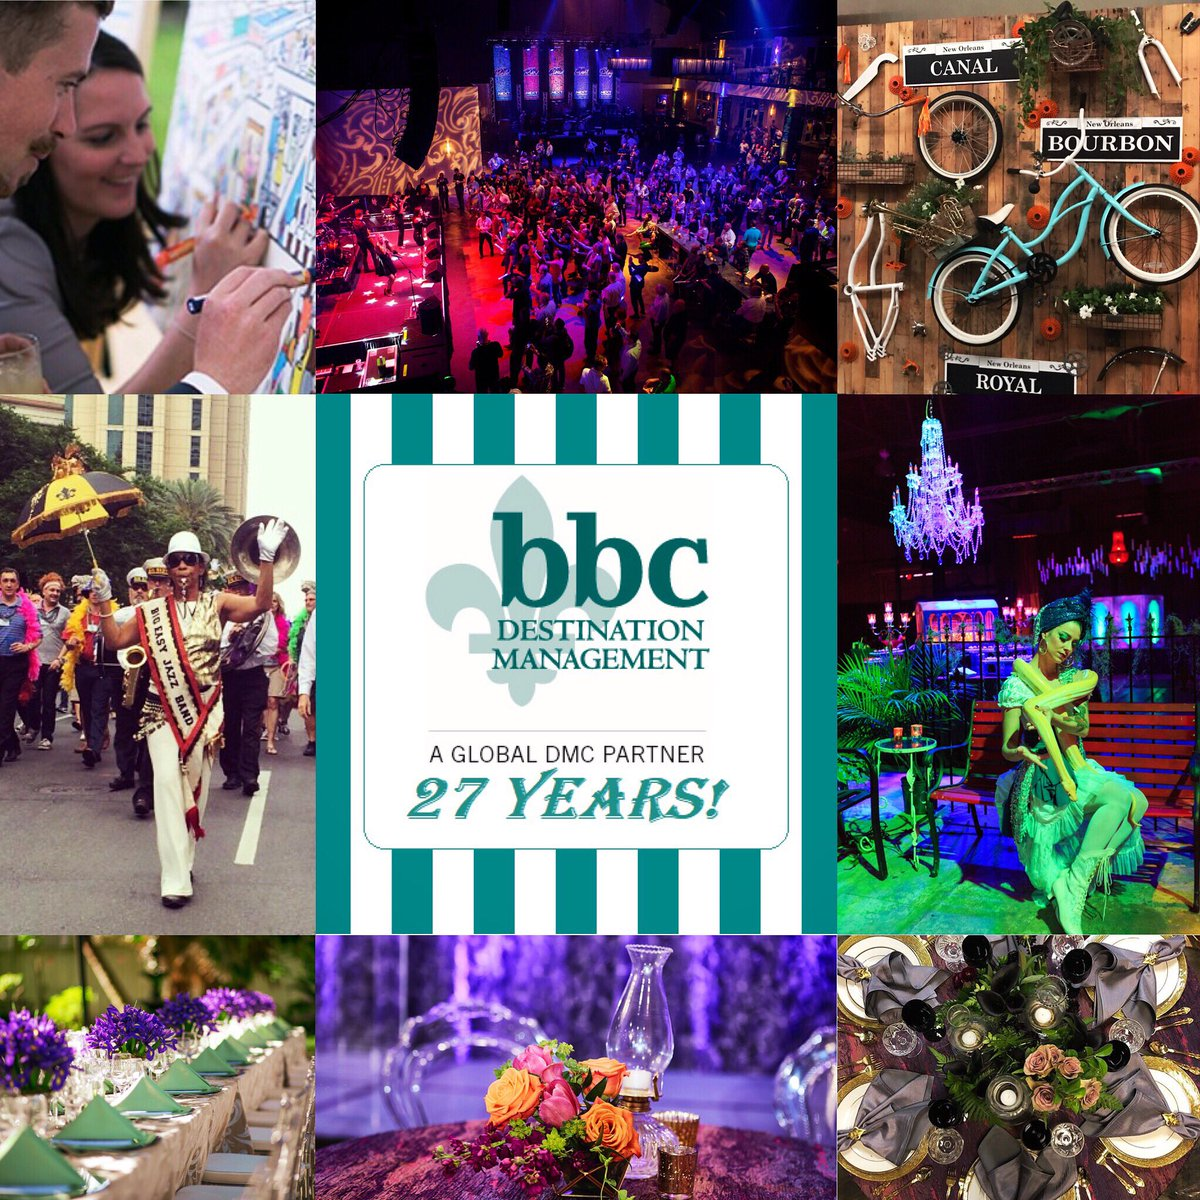 test Twitter Media - 🎂 It's our 27th Anniversary today!! 🤗 We'd like to thank every one of our vendors, staff, clients, and partners who have brought us all this way! Thank you and let's celebrate! 🎇🎉 #bbcdmc #bbccreative #eventmanagement #eventplanner #nola #nolaevents #anniversary #27years https://t.co/0ycVf3567S